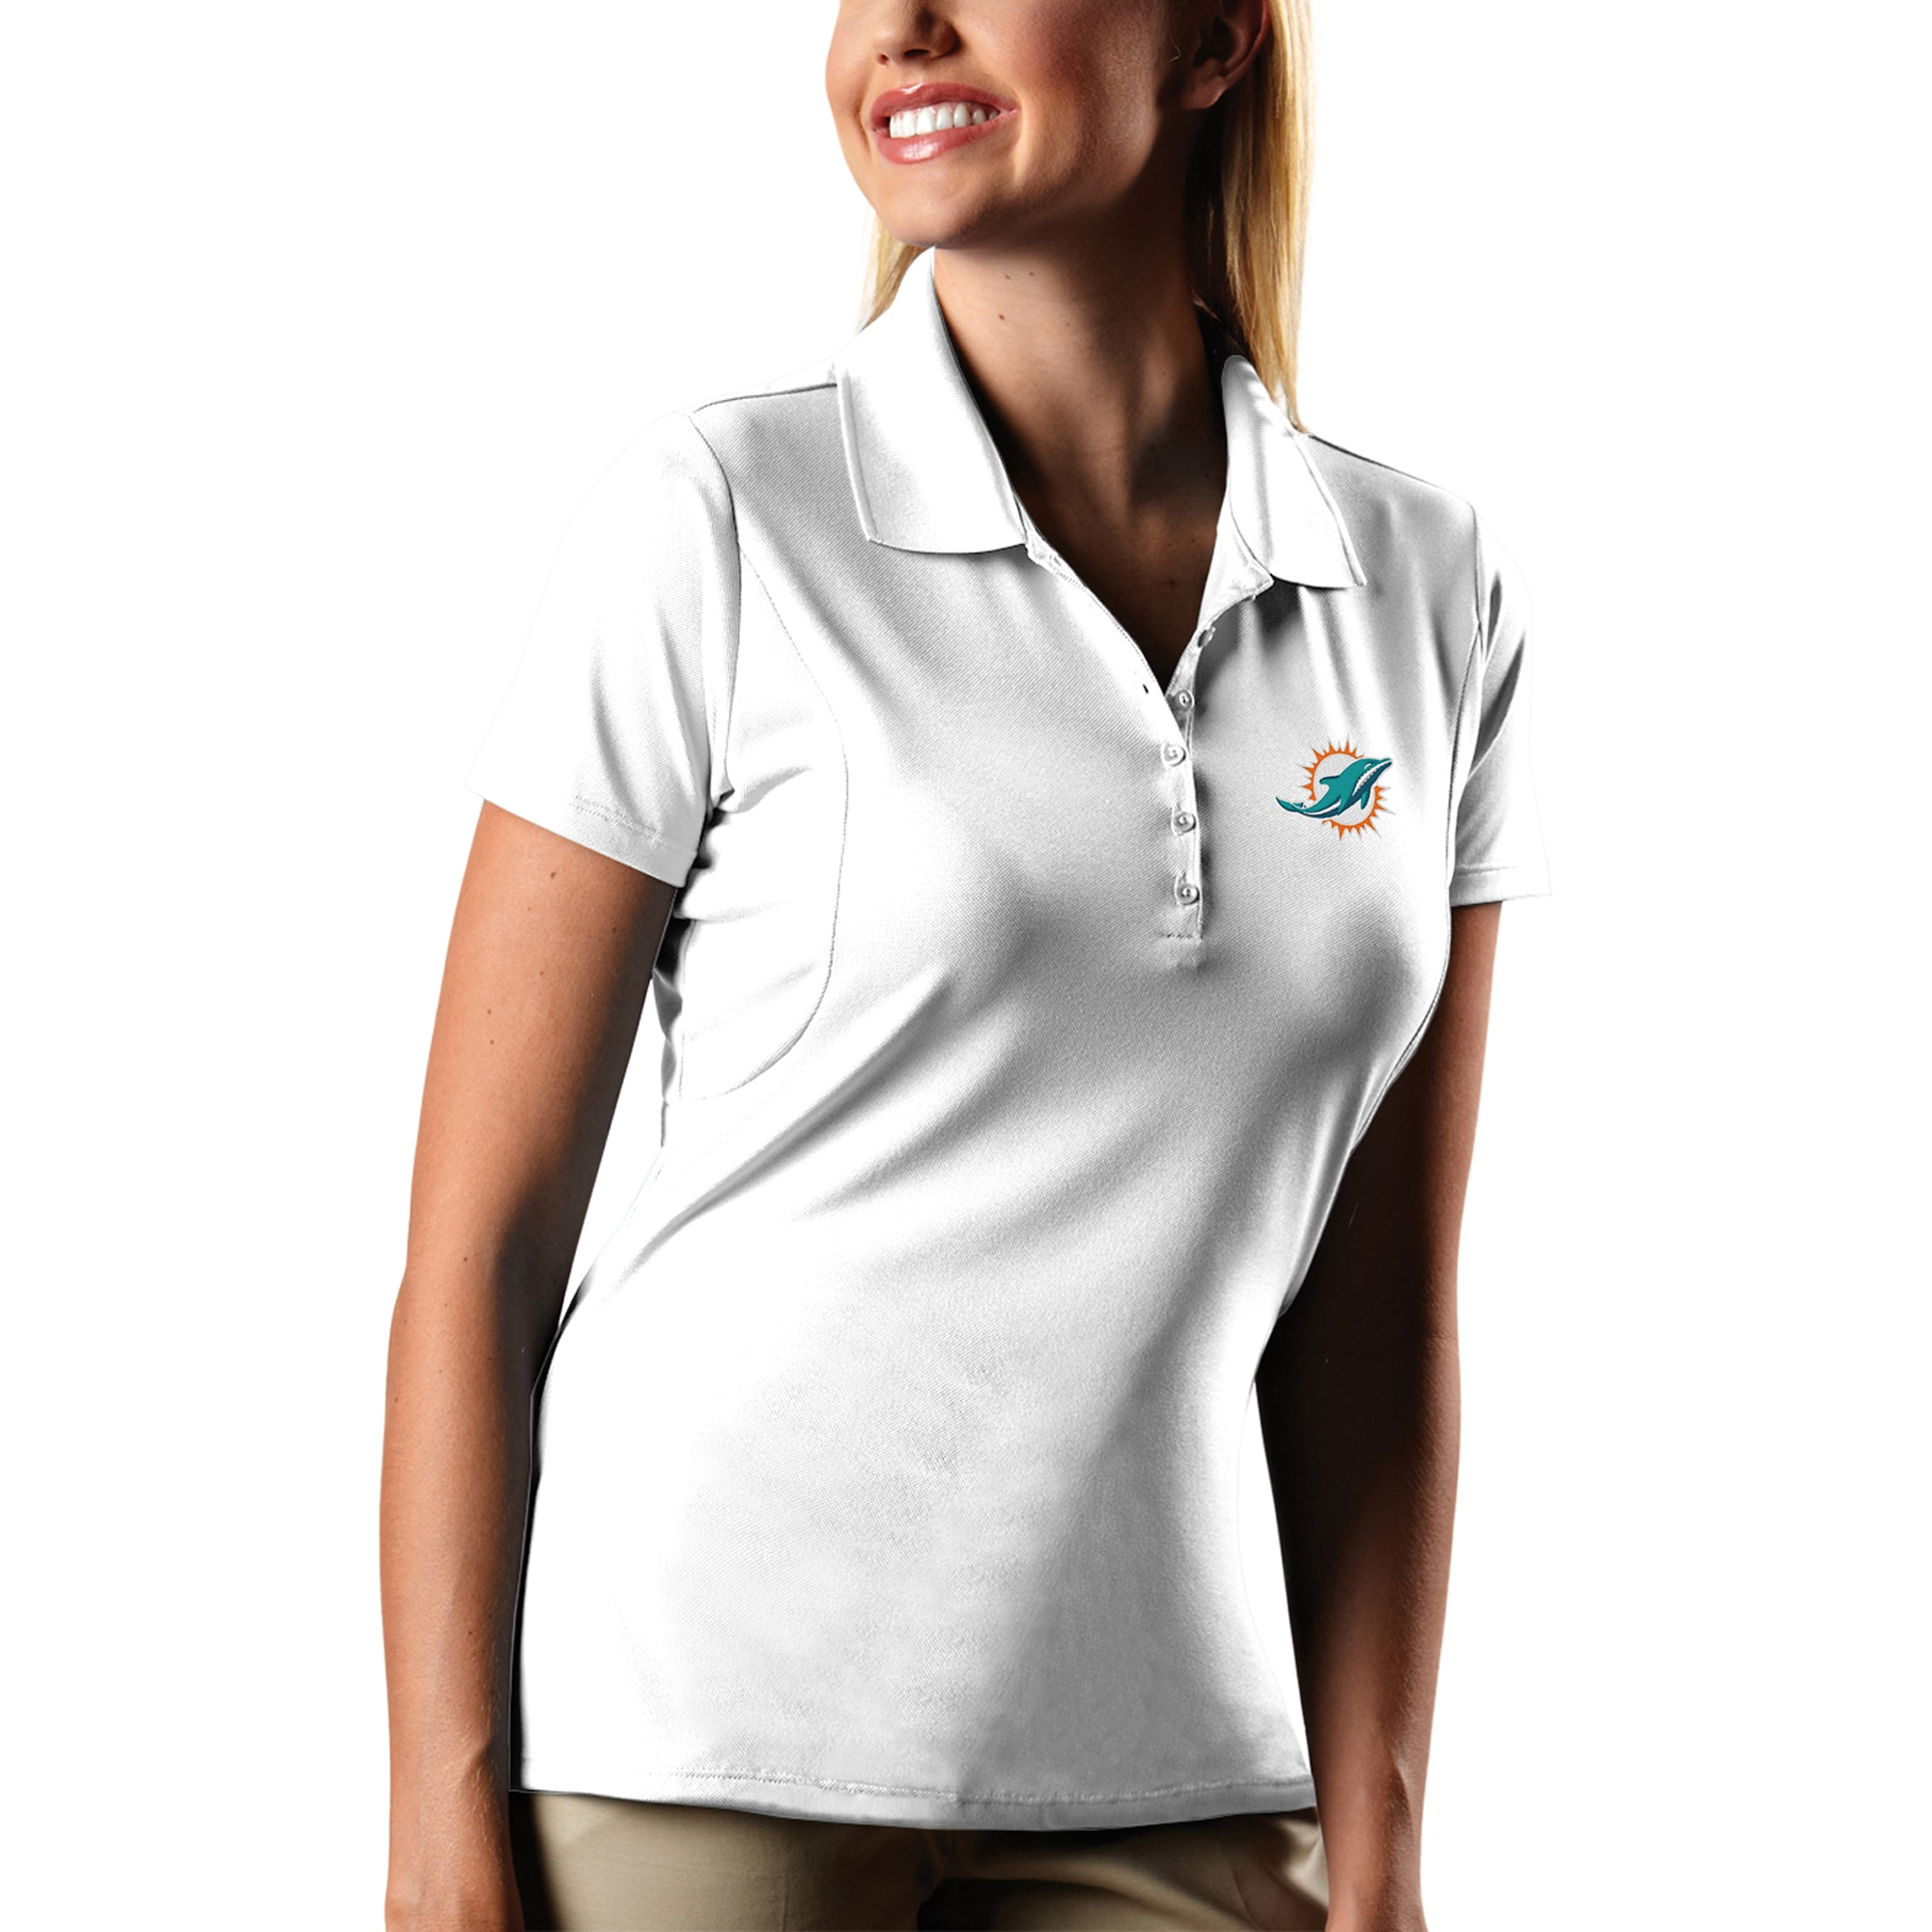 Miami Dolphins Antigua Women's Pique Xtra-Lite Polo - White